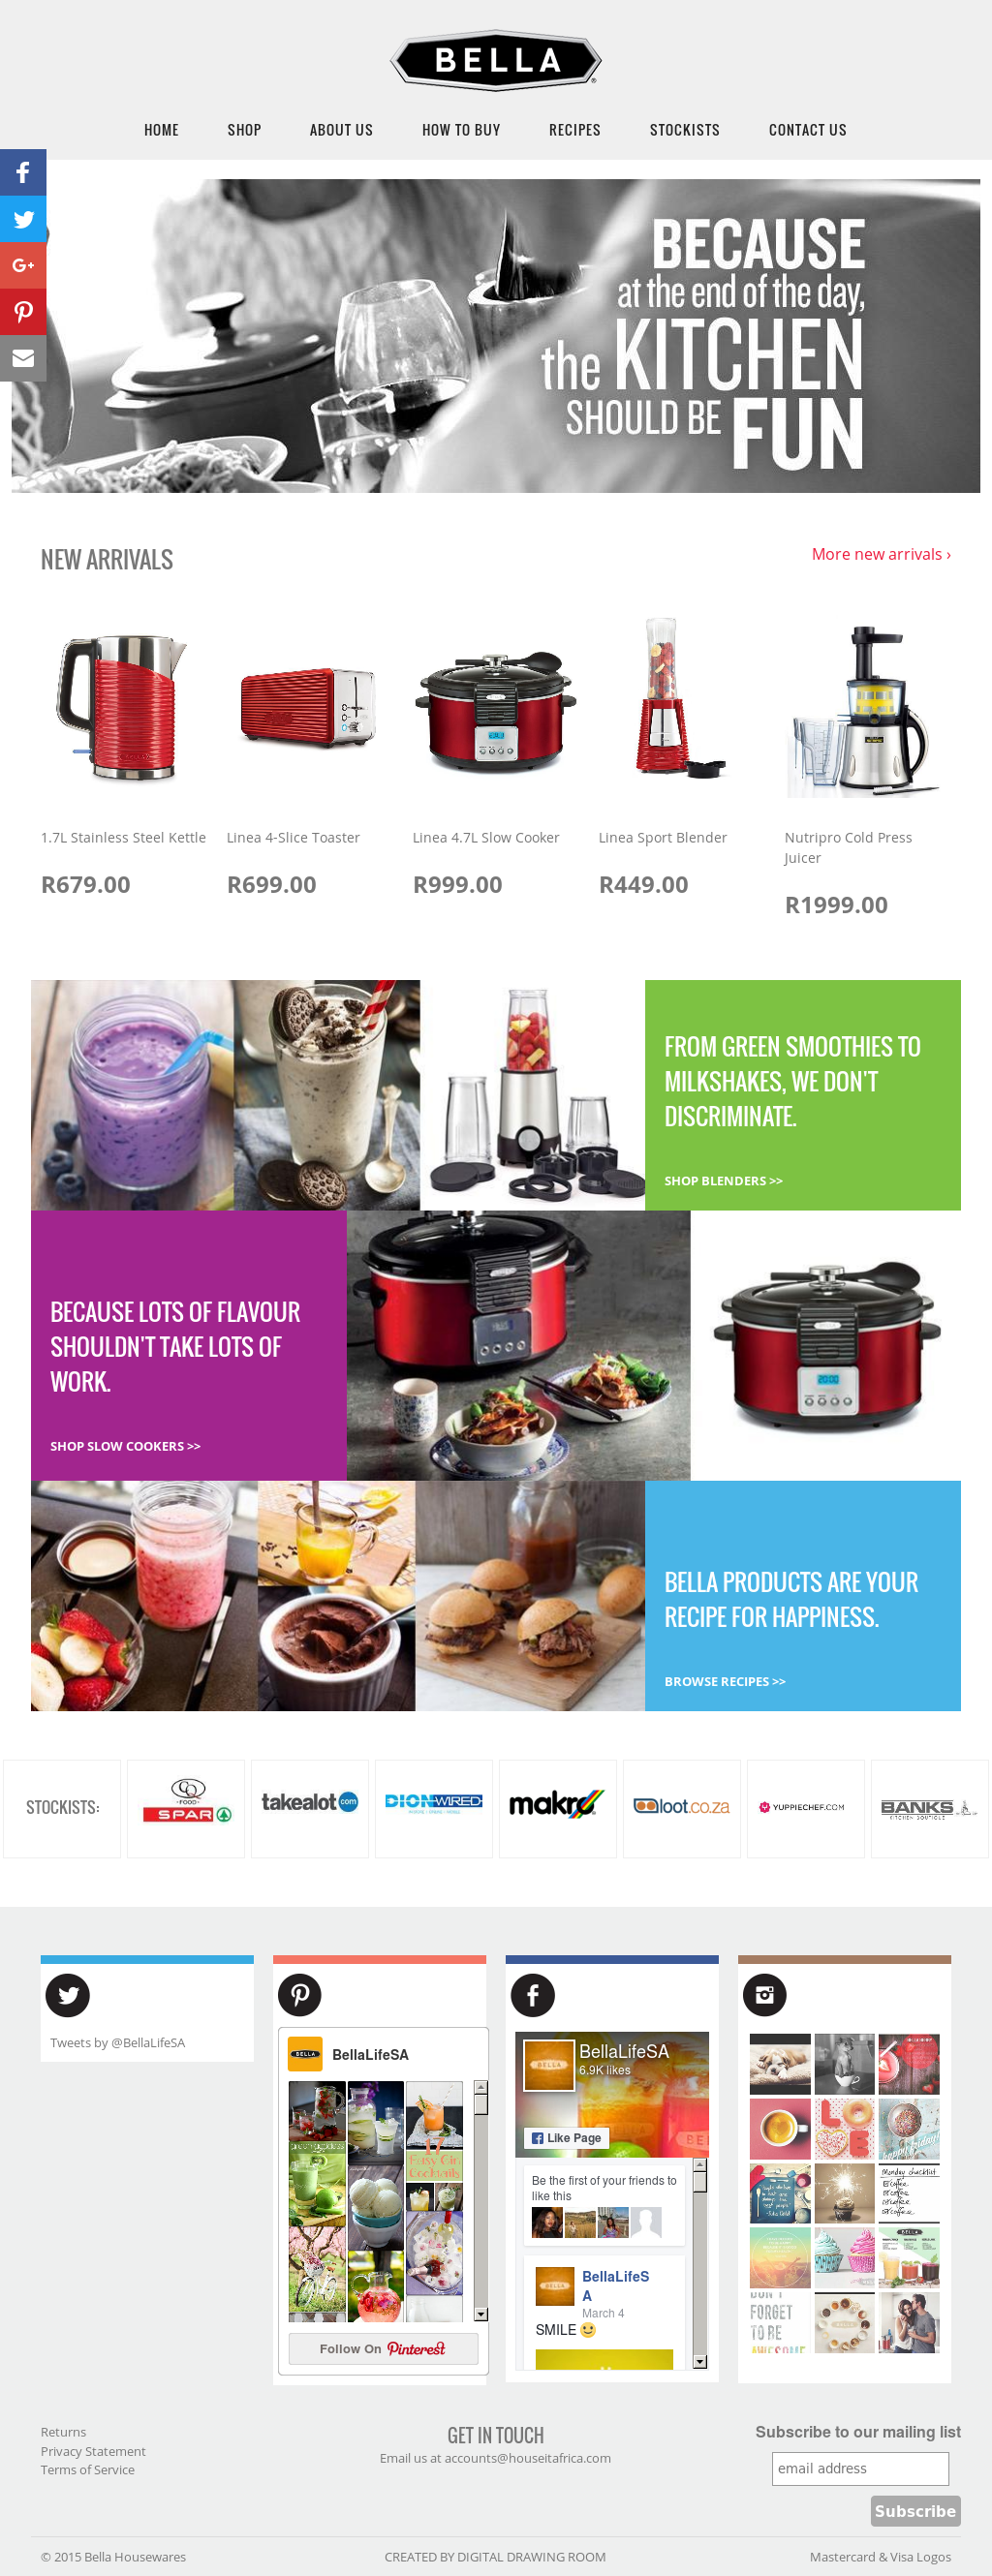 Bella Housewares Competitors, Revenue And Employees   Owler Company Profile